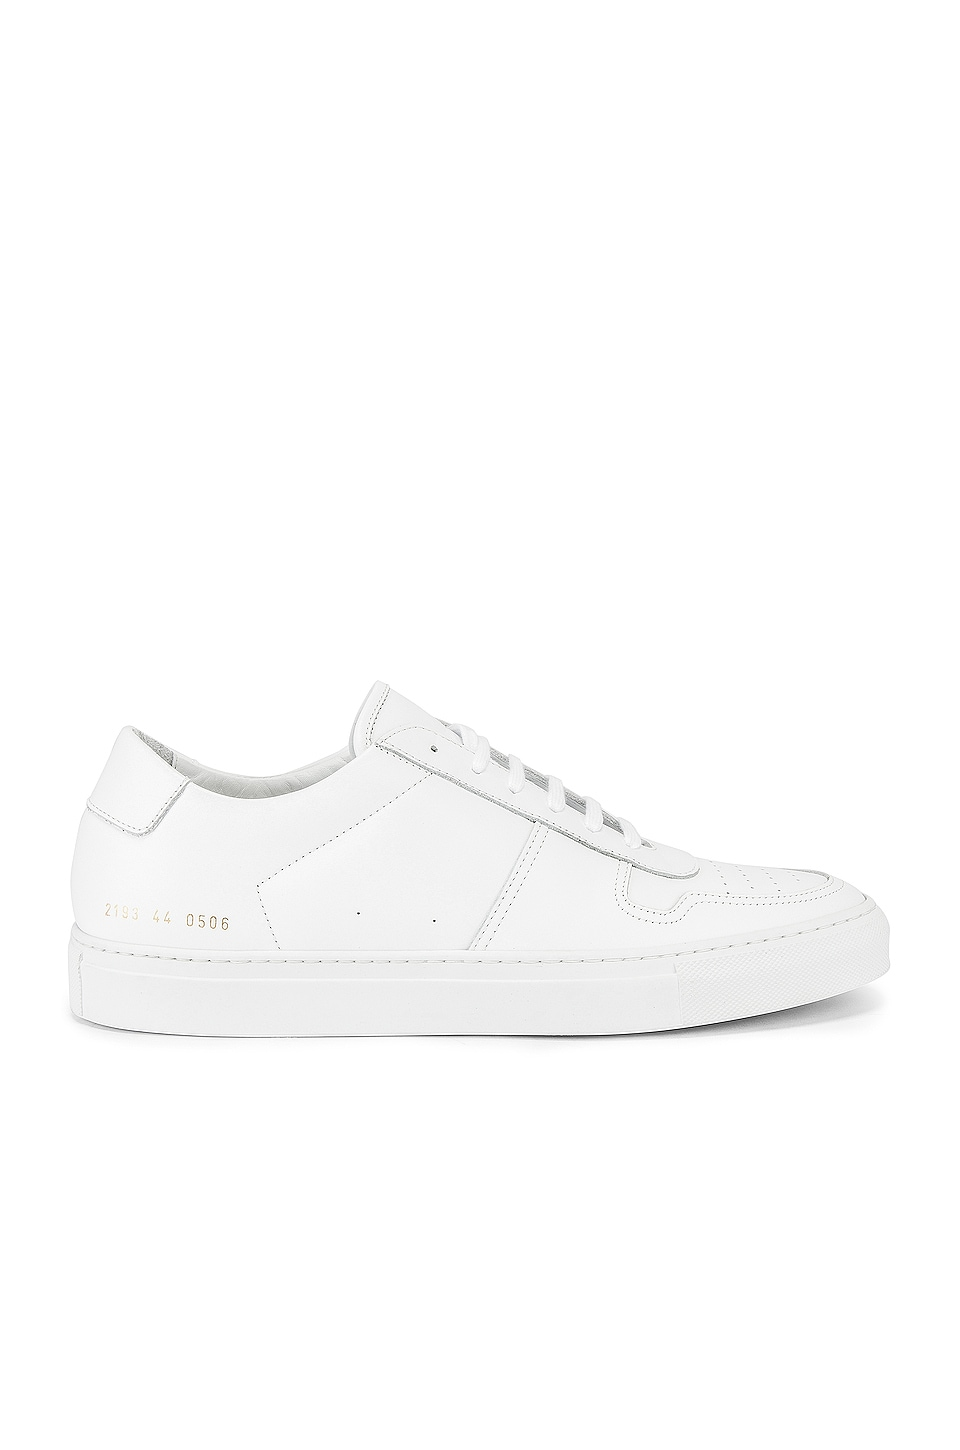 Common Projects Leather BBall Low in White